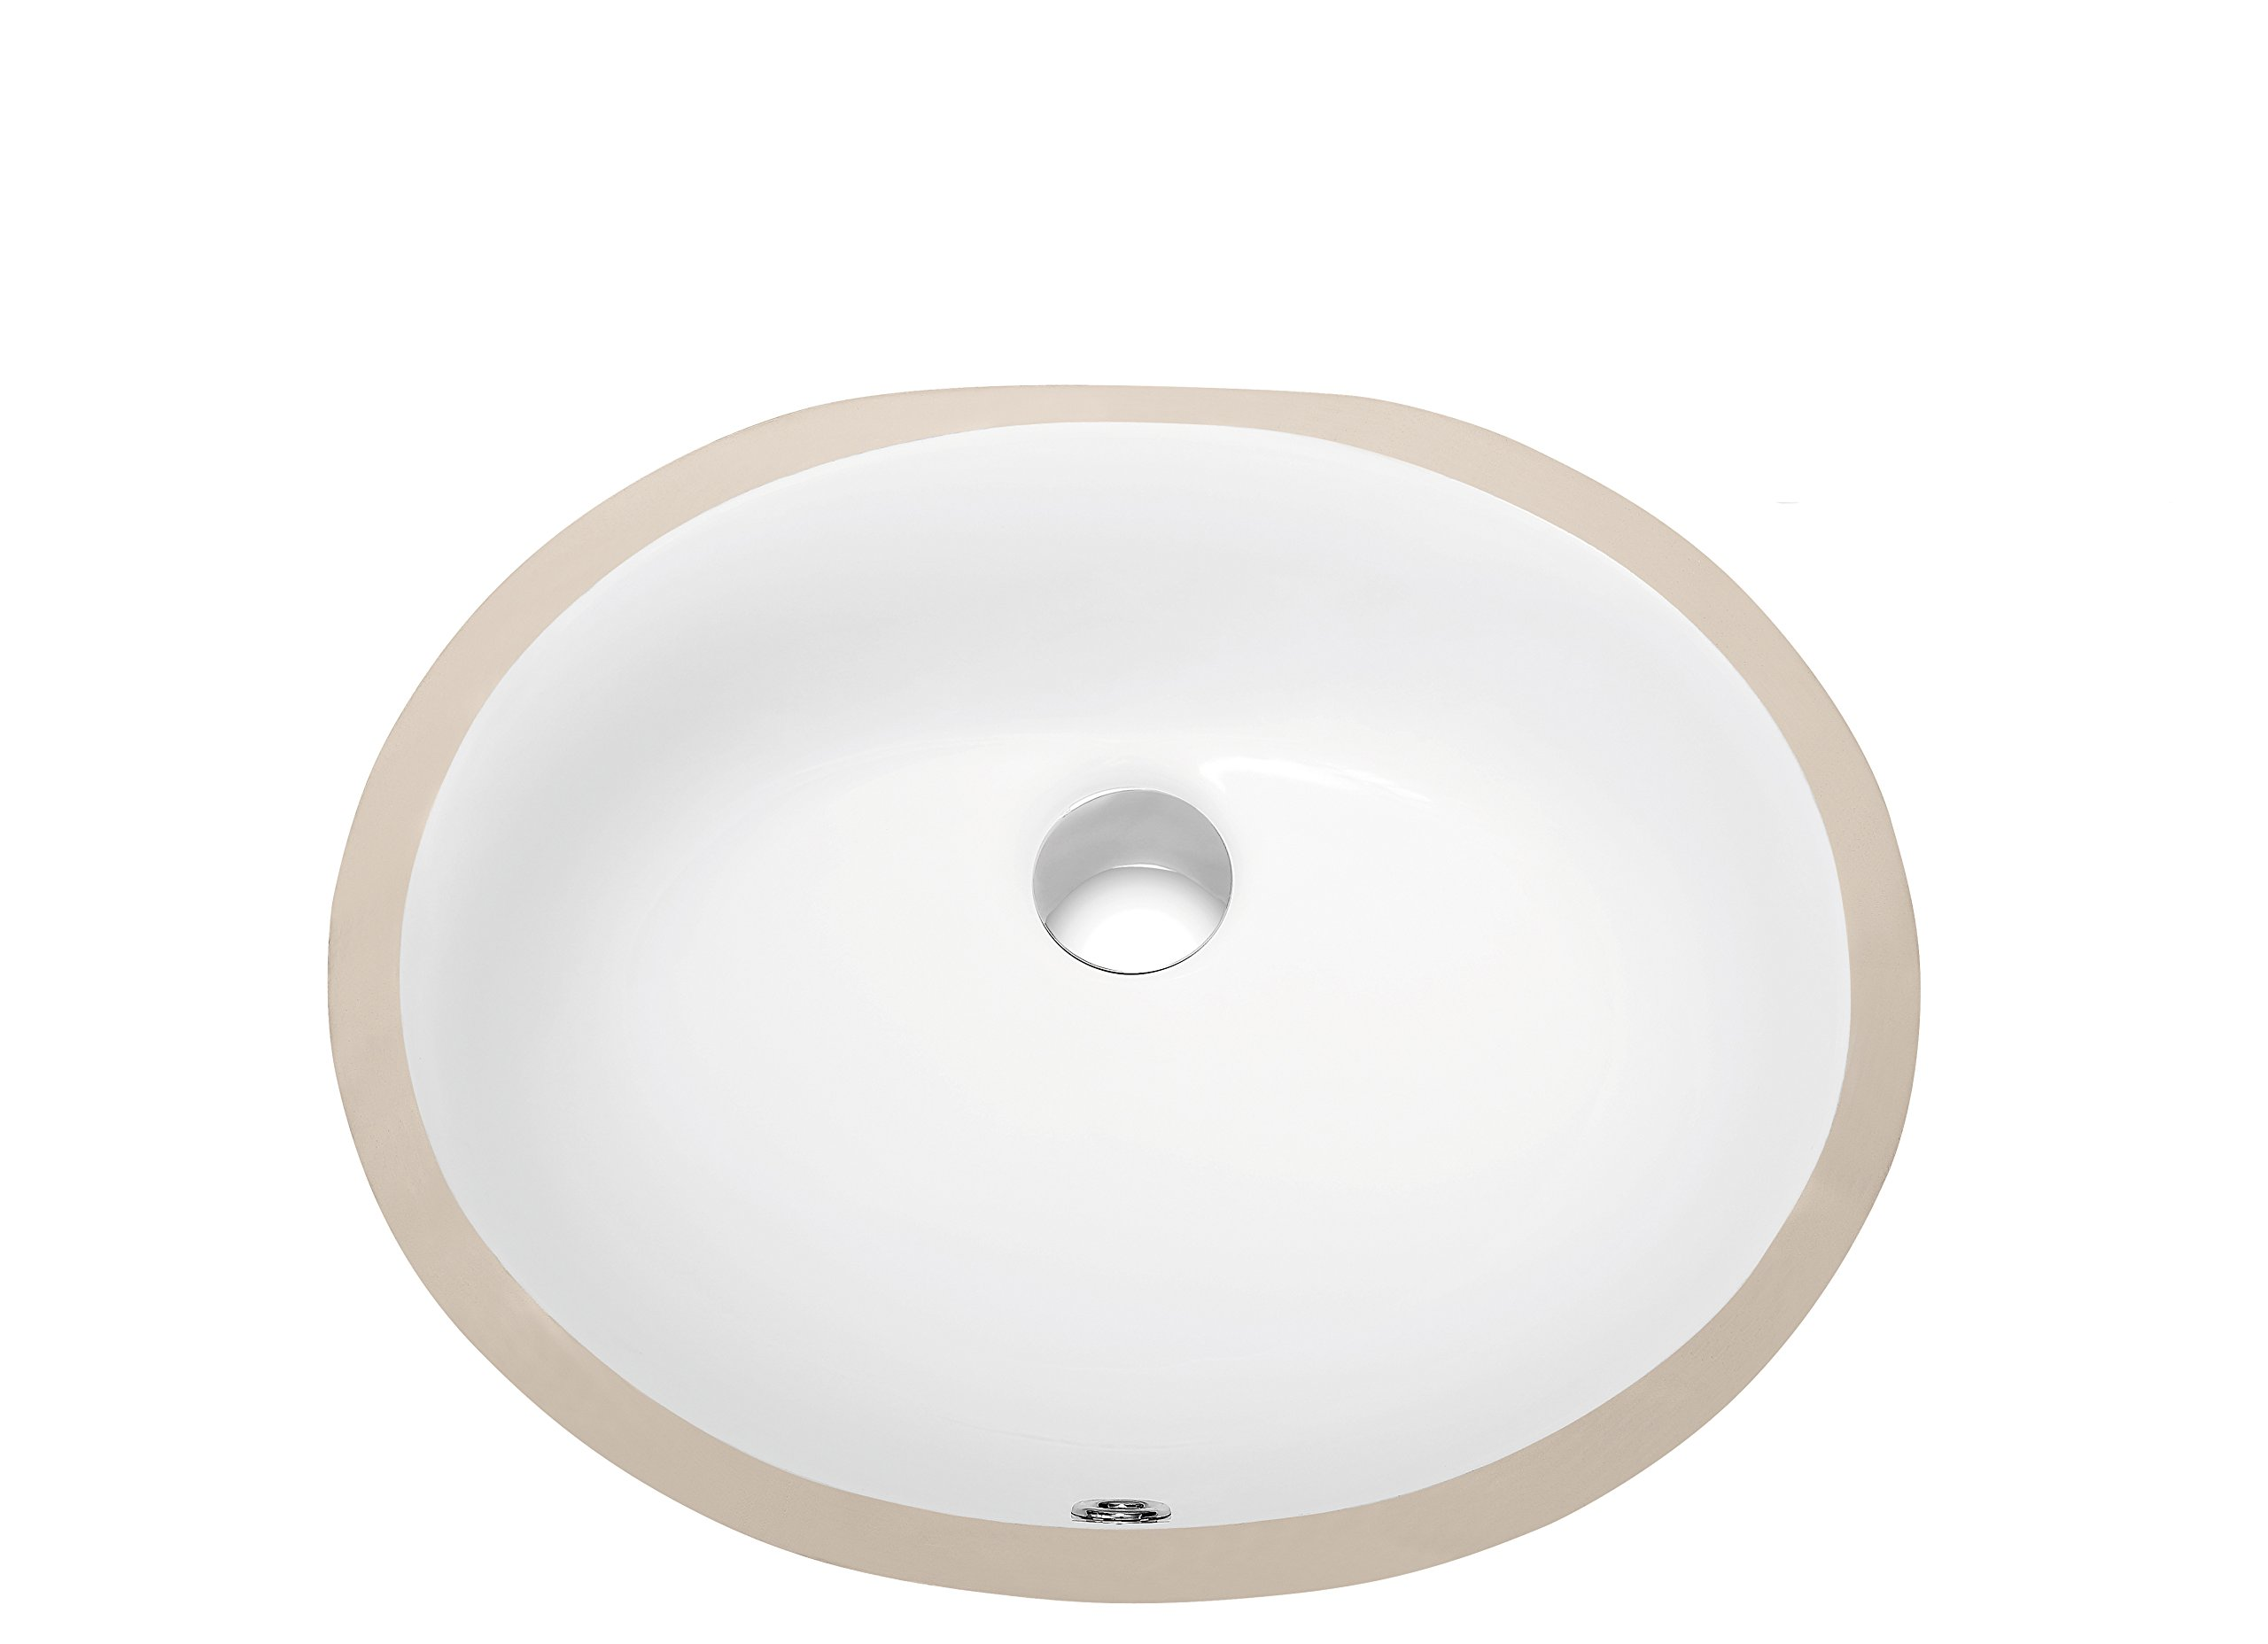 Dawn CUSN007A00 Under Counter Oval Ceramic Basin with Overflow, White by Dawn